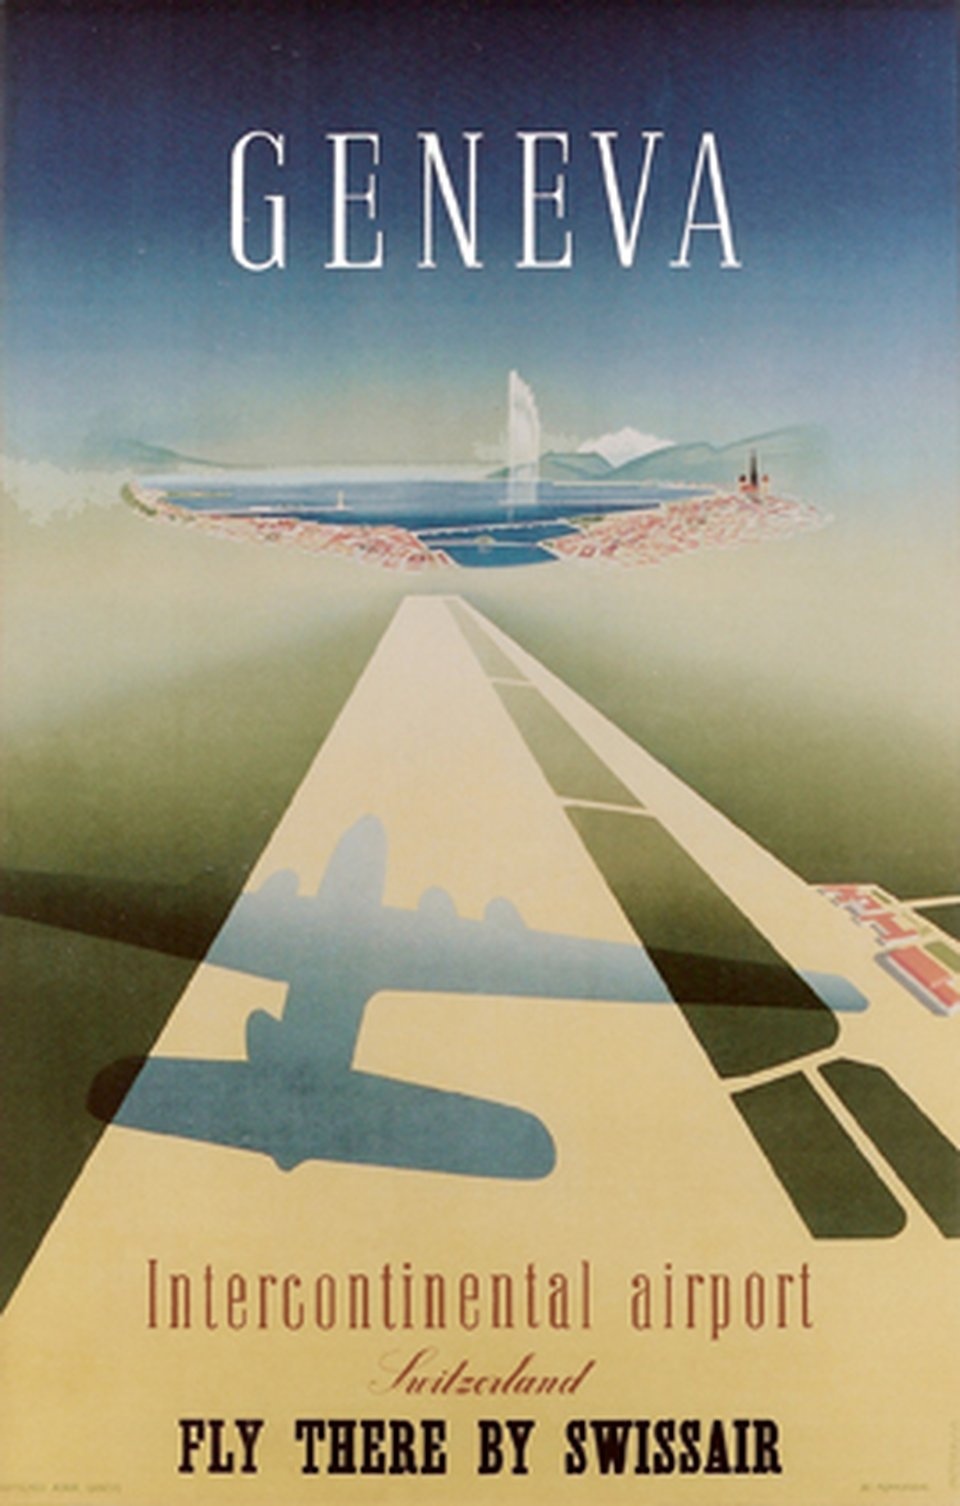 Geneva International Airport, Fly there by Swissair – Affiche ancienne – Walther MAHRER – 1948